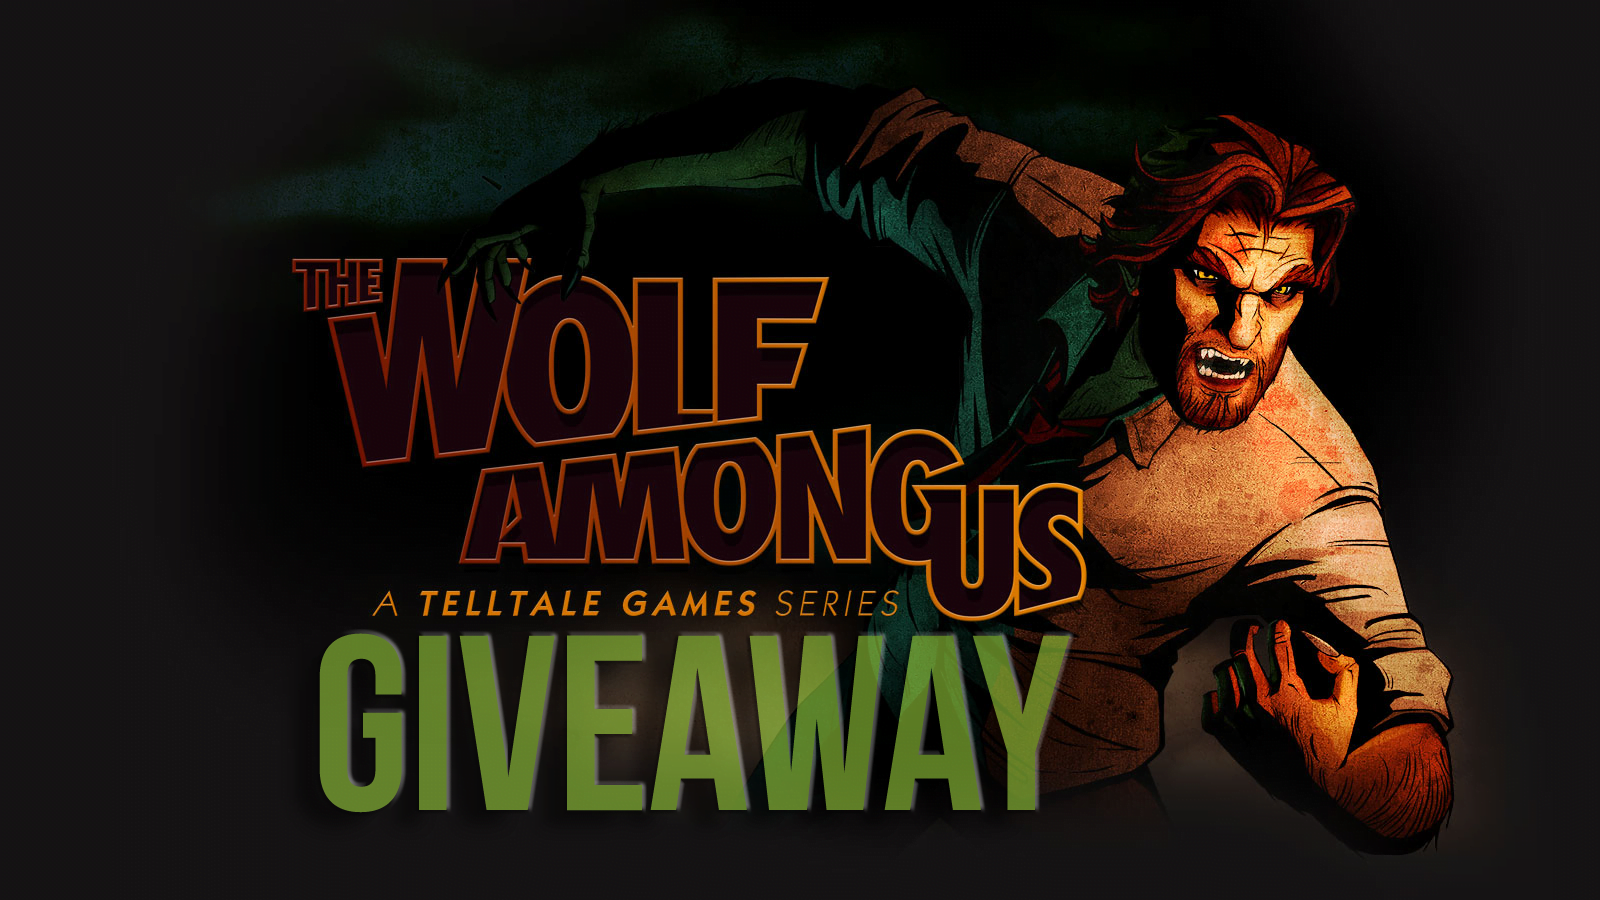 The Wolf Among Us Giveaway